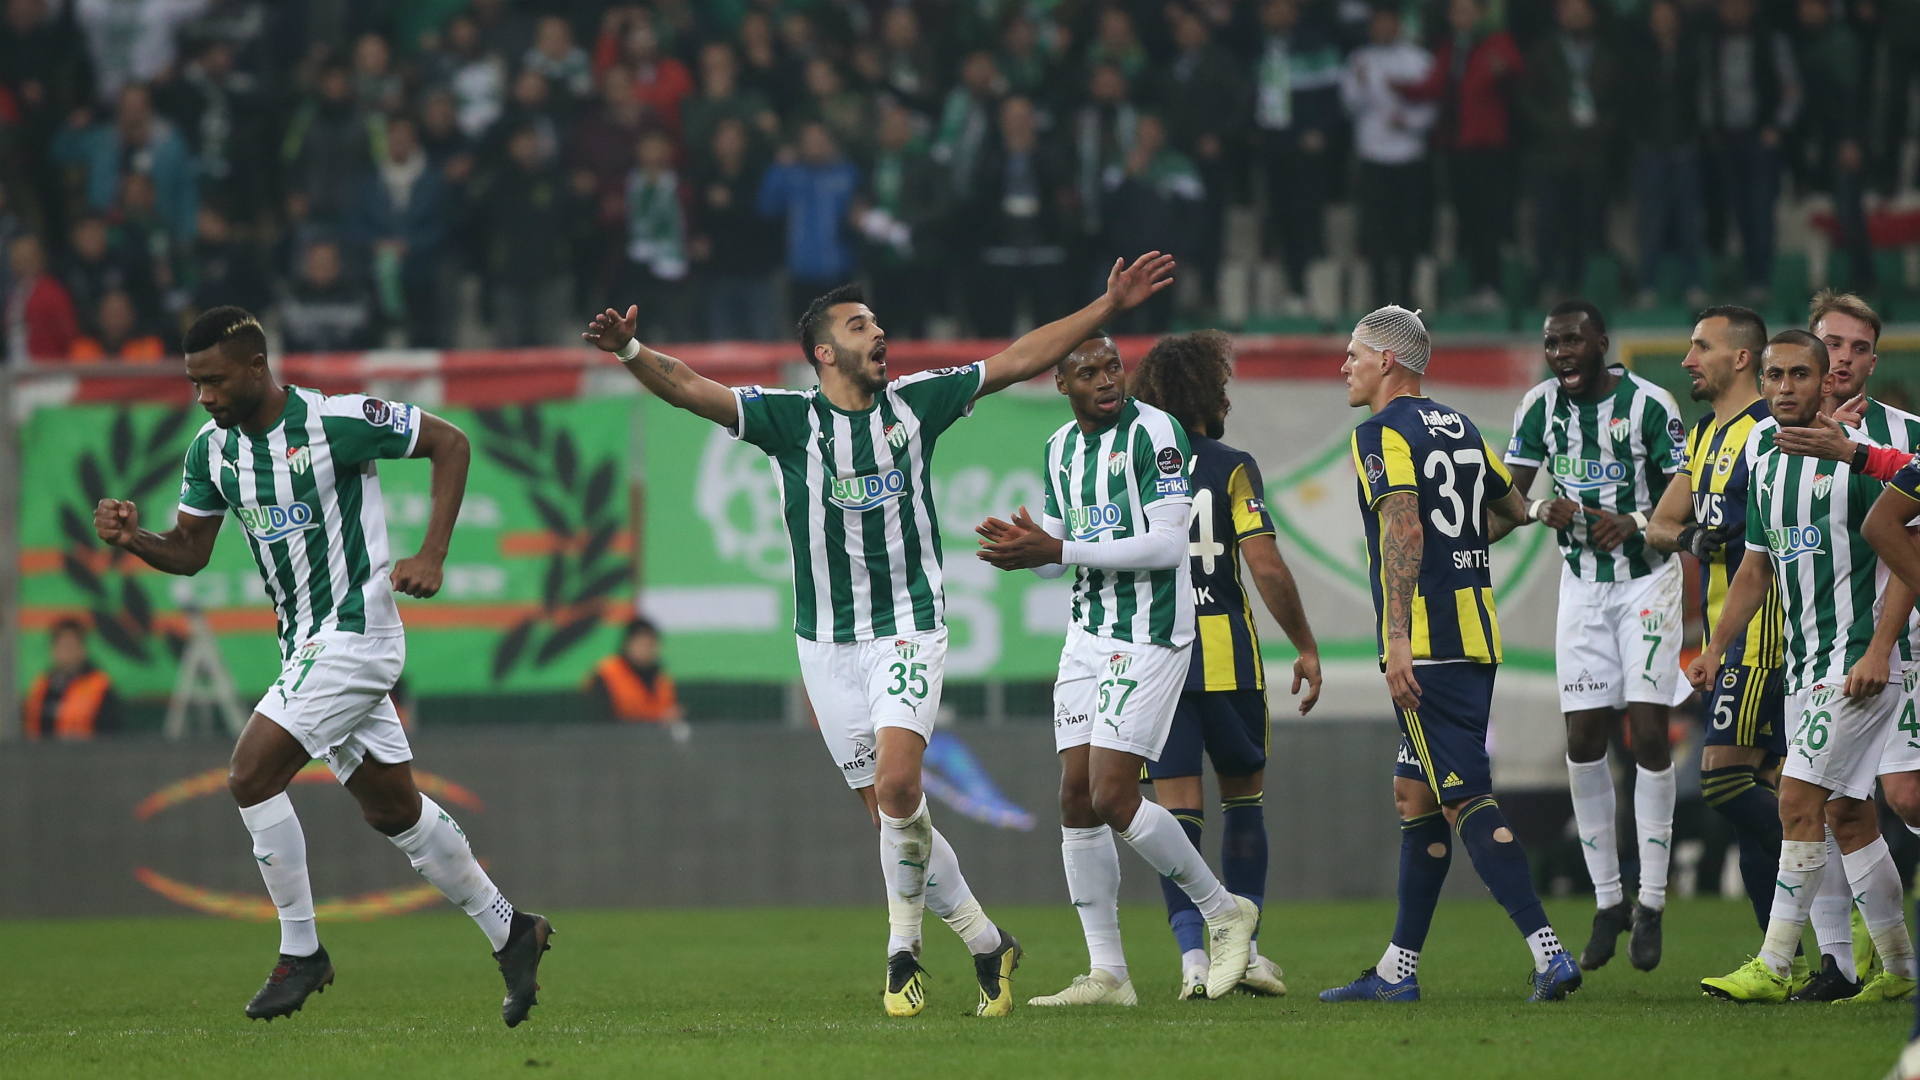 Abdullahi Shehu opens 2019-20 goal account in Bursaspor win